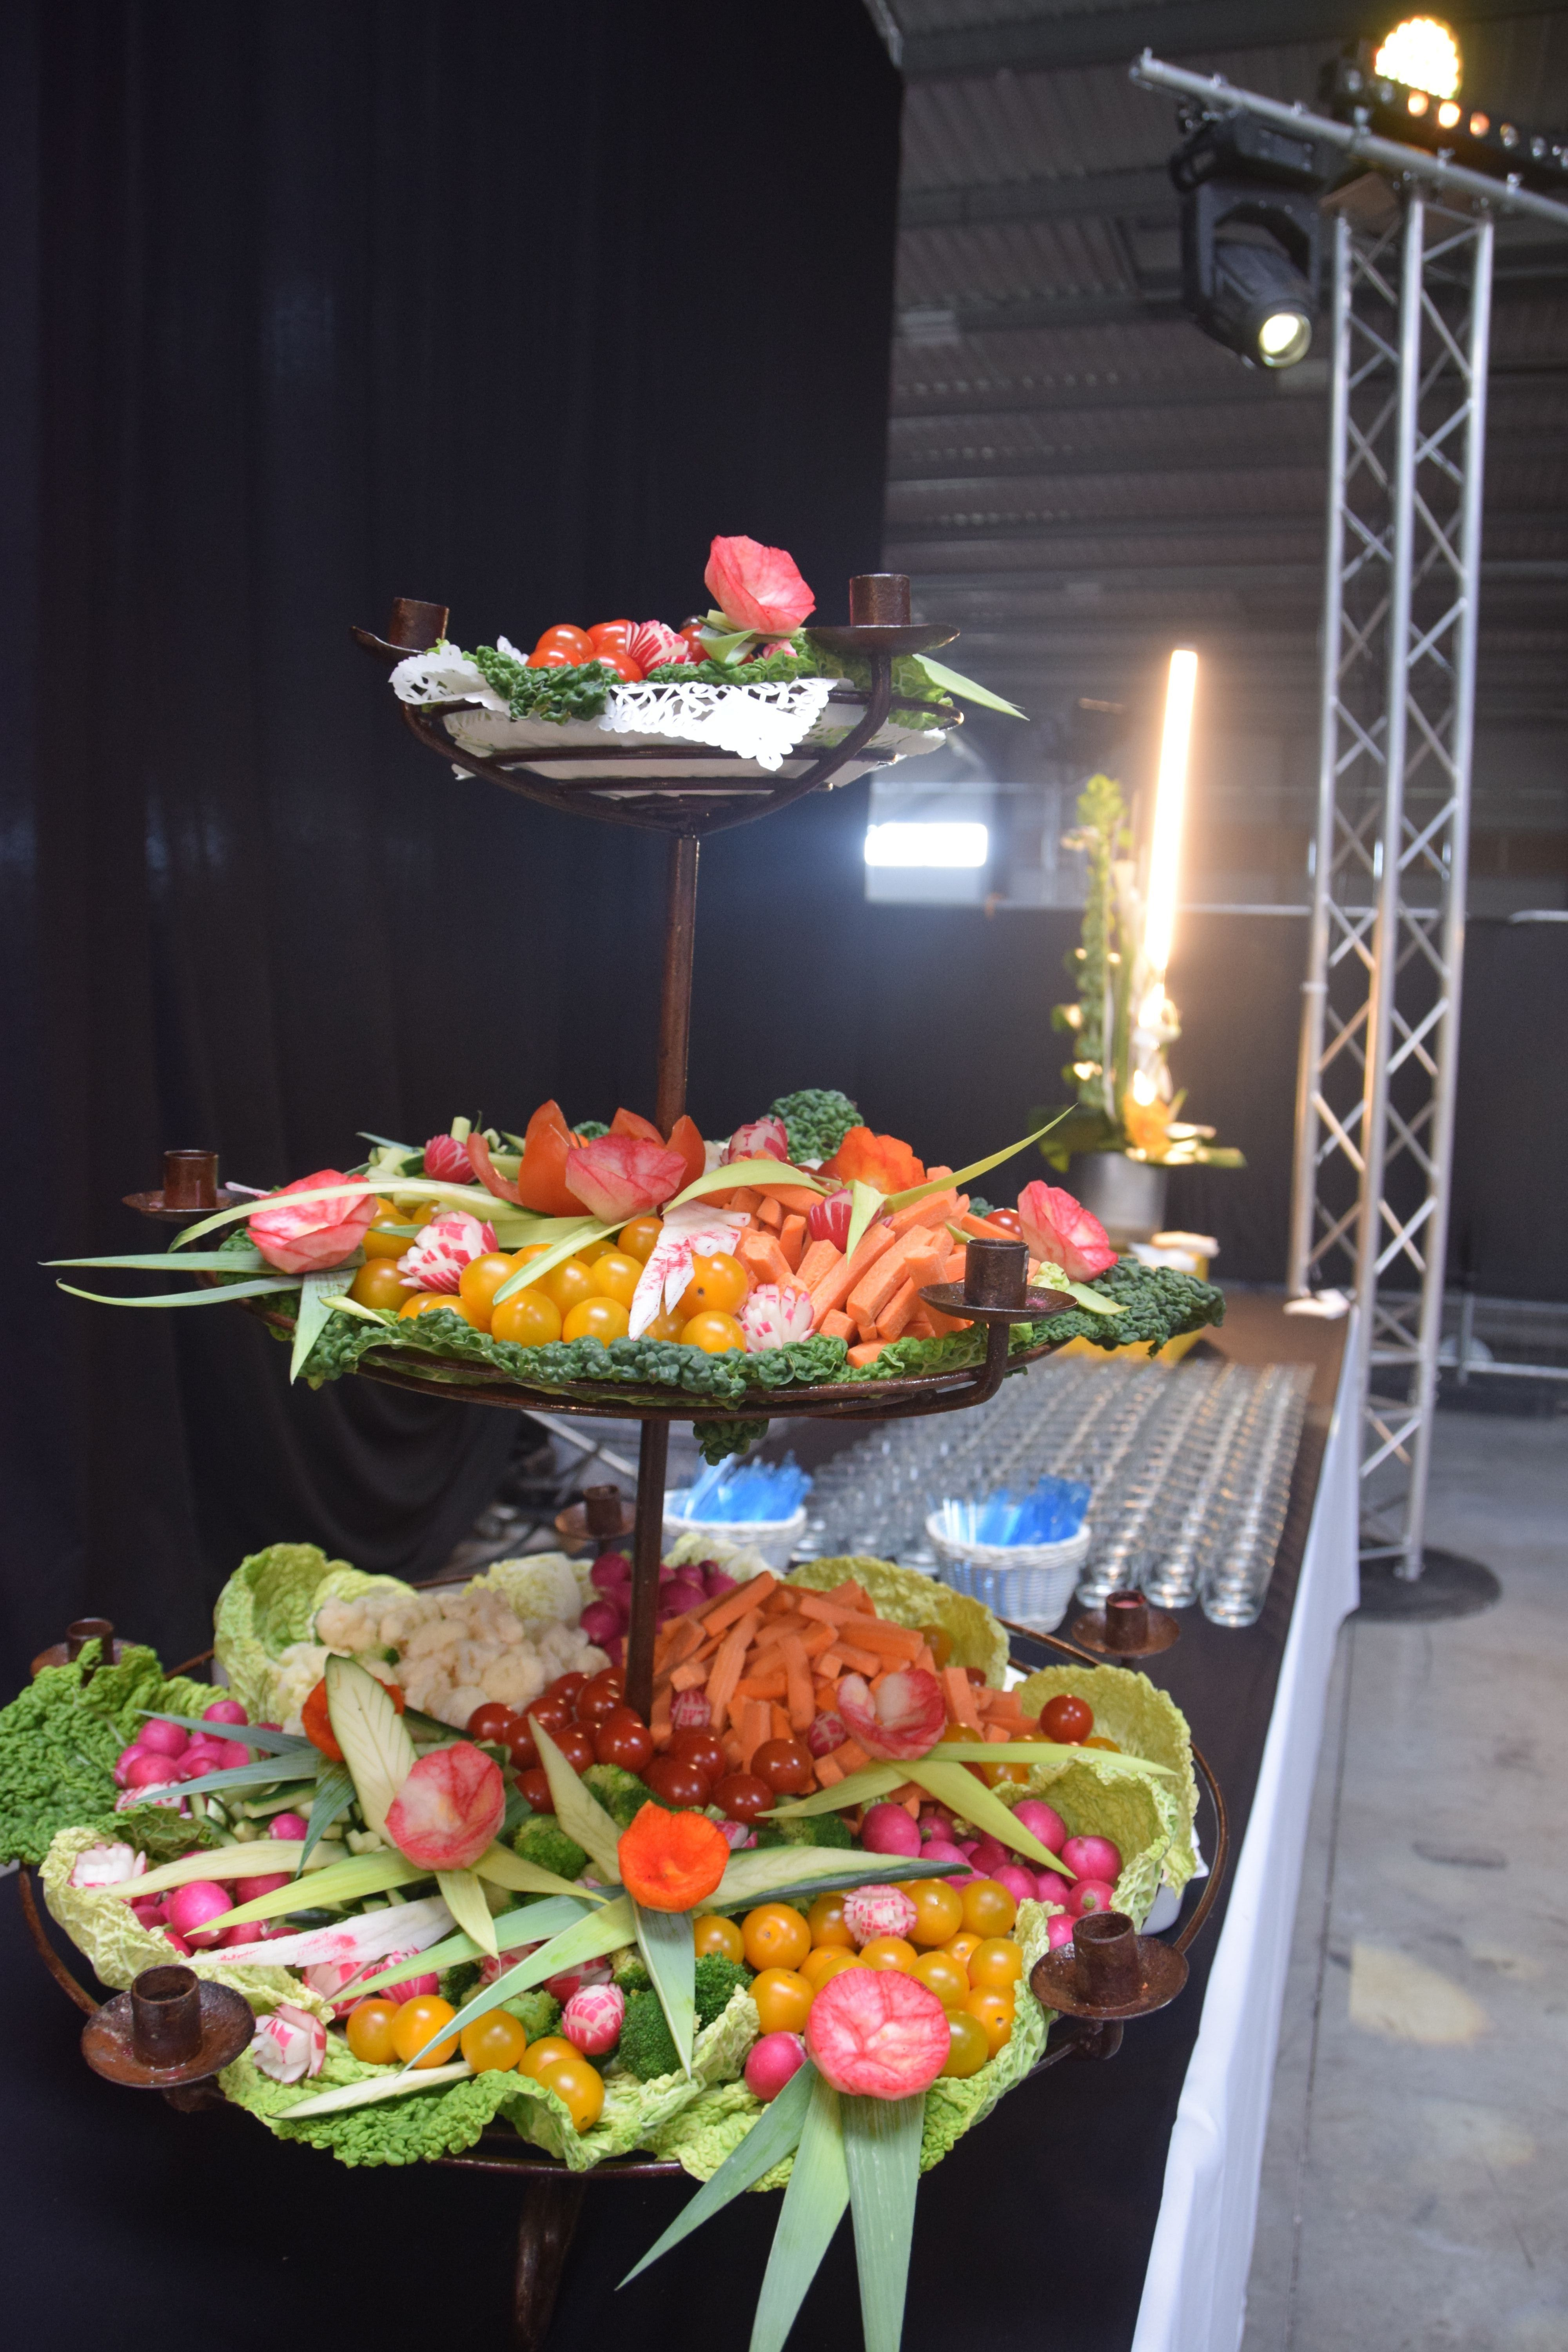 traiteur-evenementiel-reims-epernay-buffet